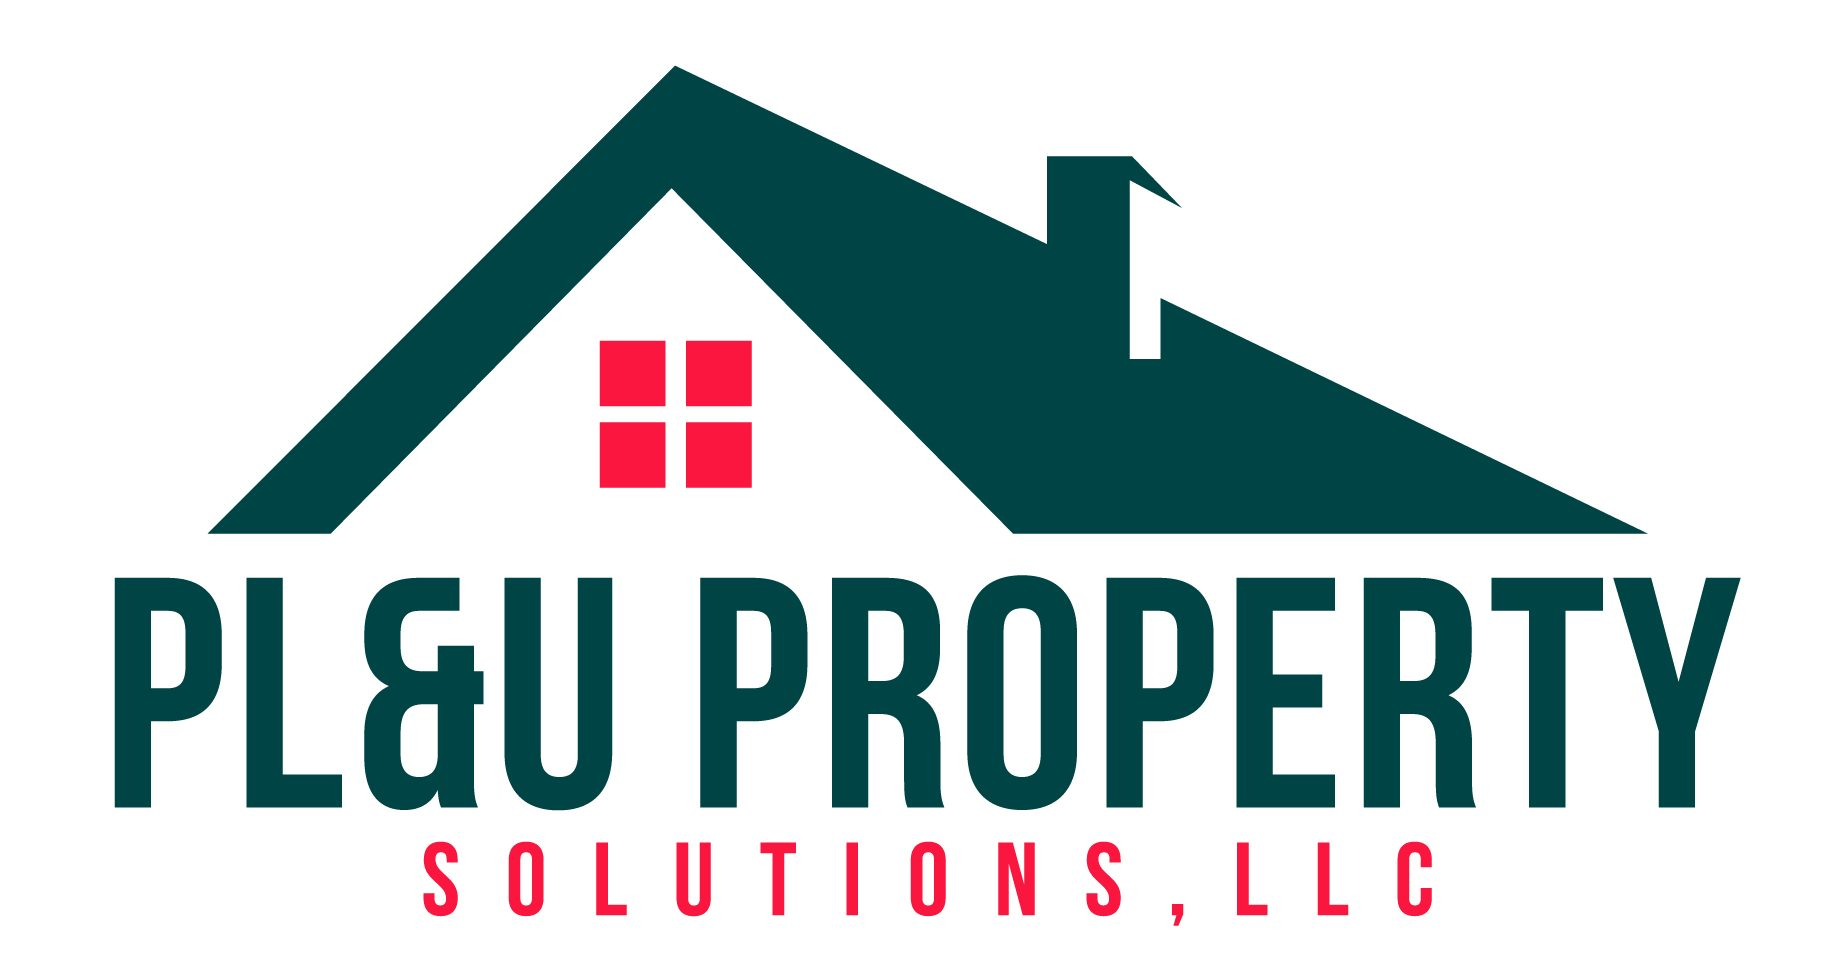 PL&U Property Solutions, LLC